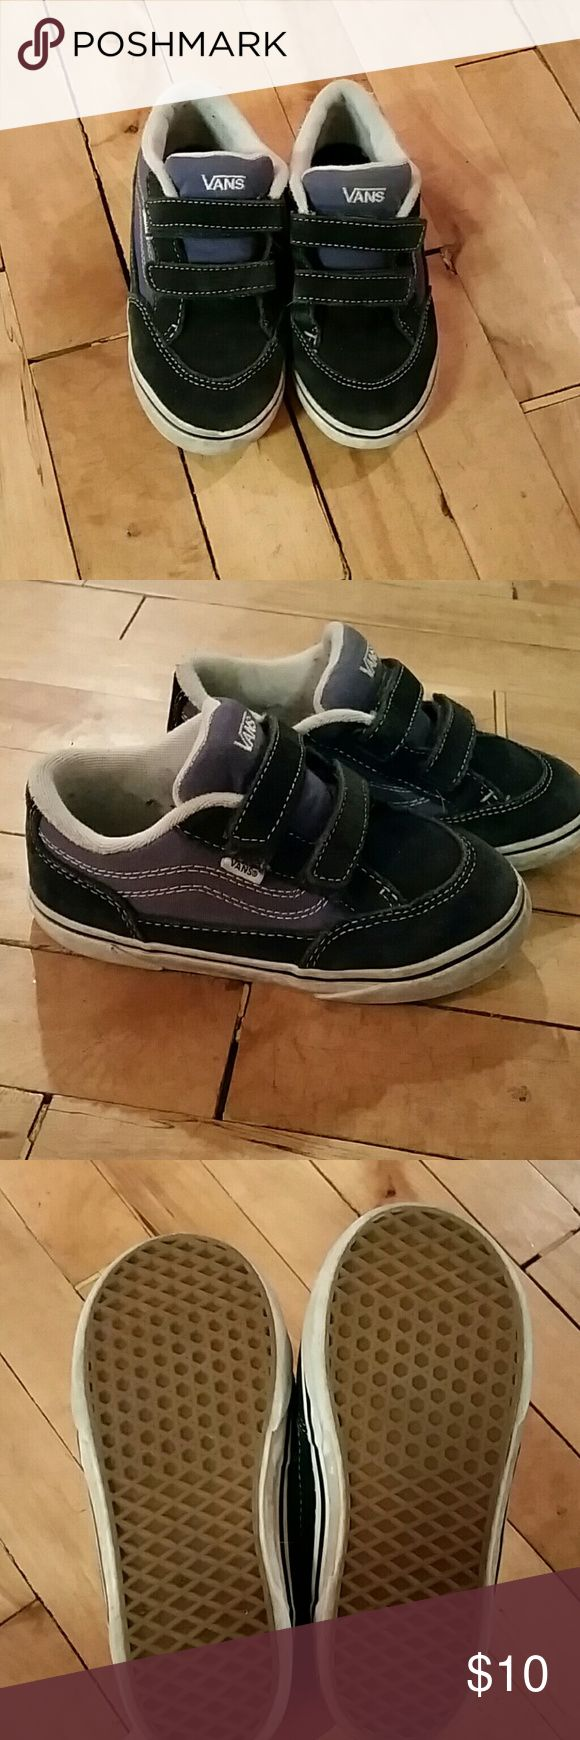 Boys Vans Boys velcro Vans size 10 toddler. From a pet friendly, smoke free home Vans Shoes Sneakers